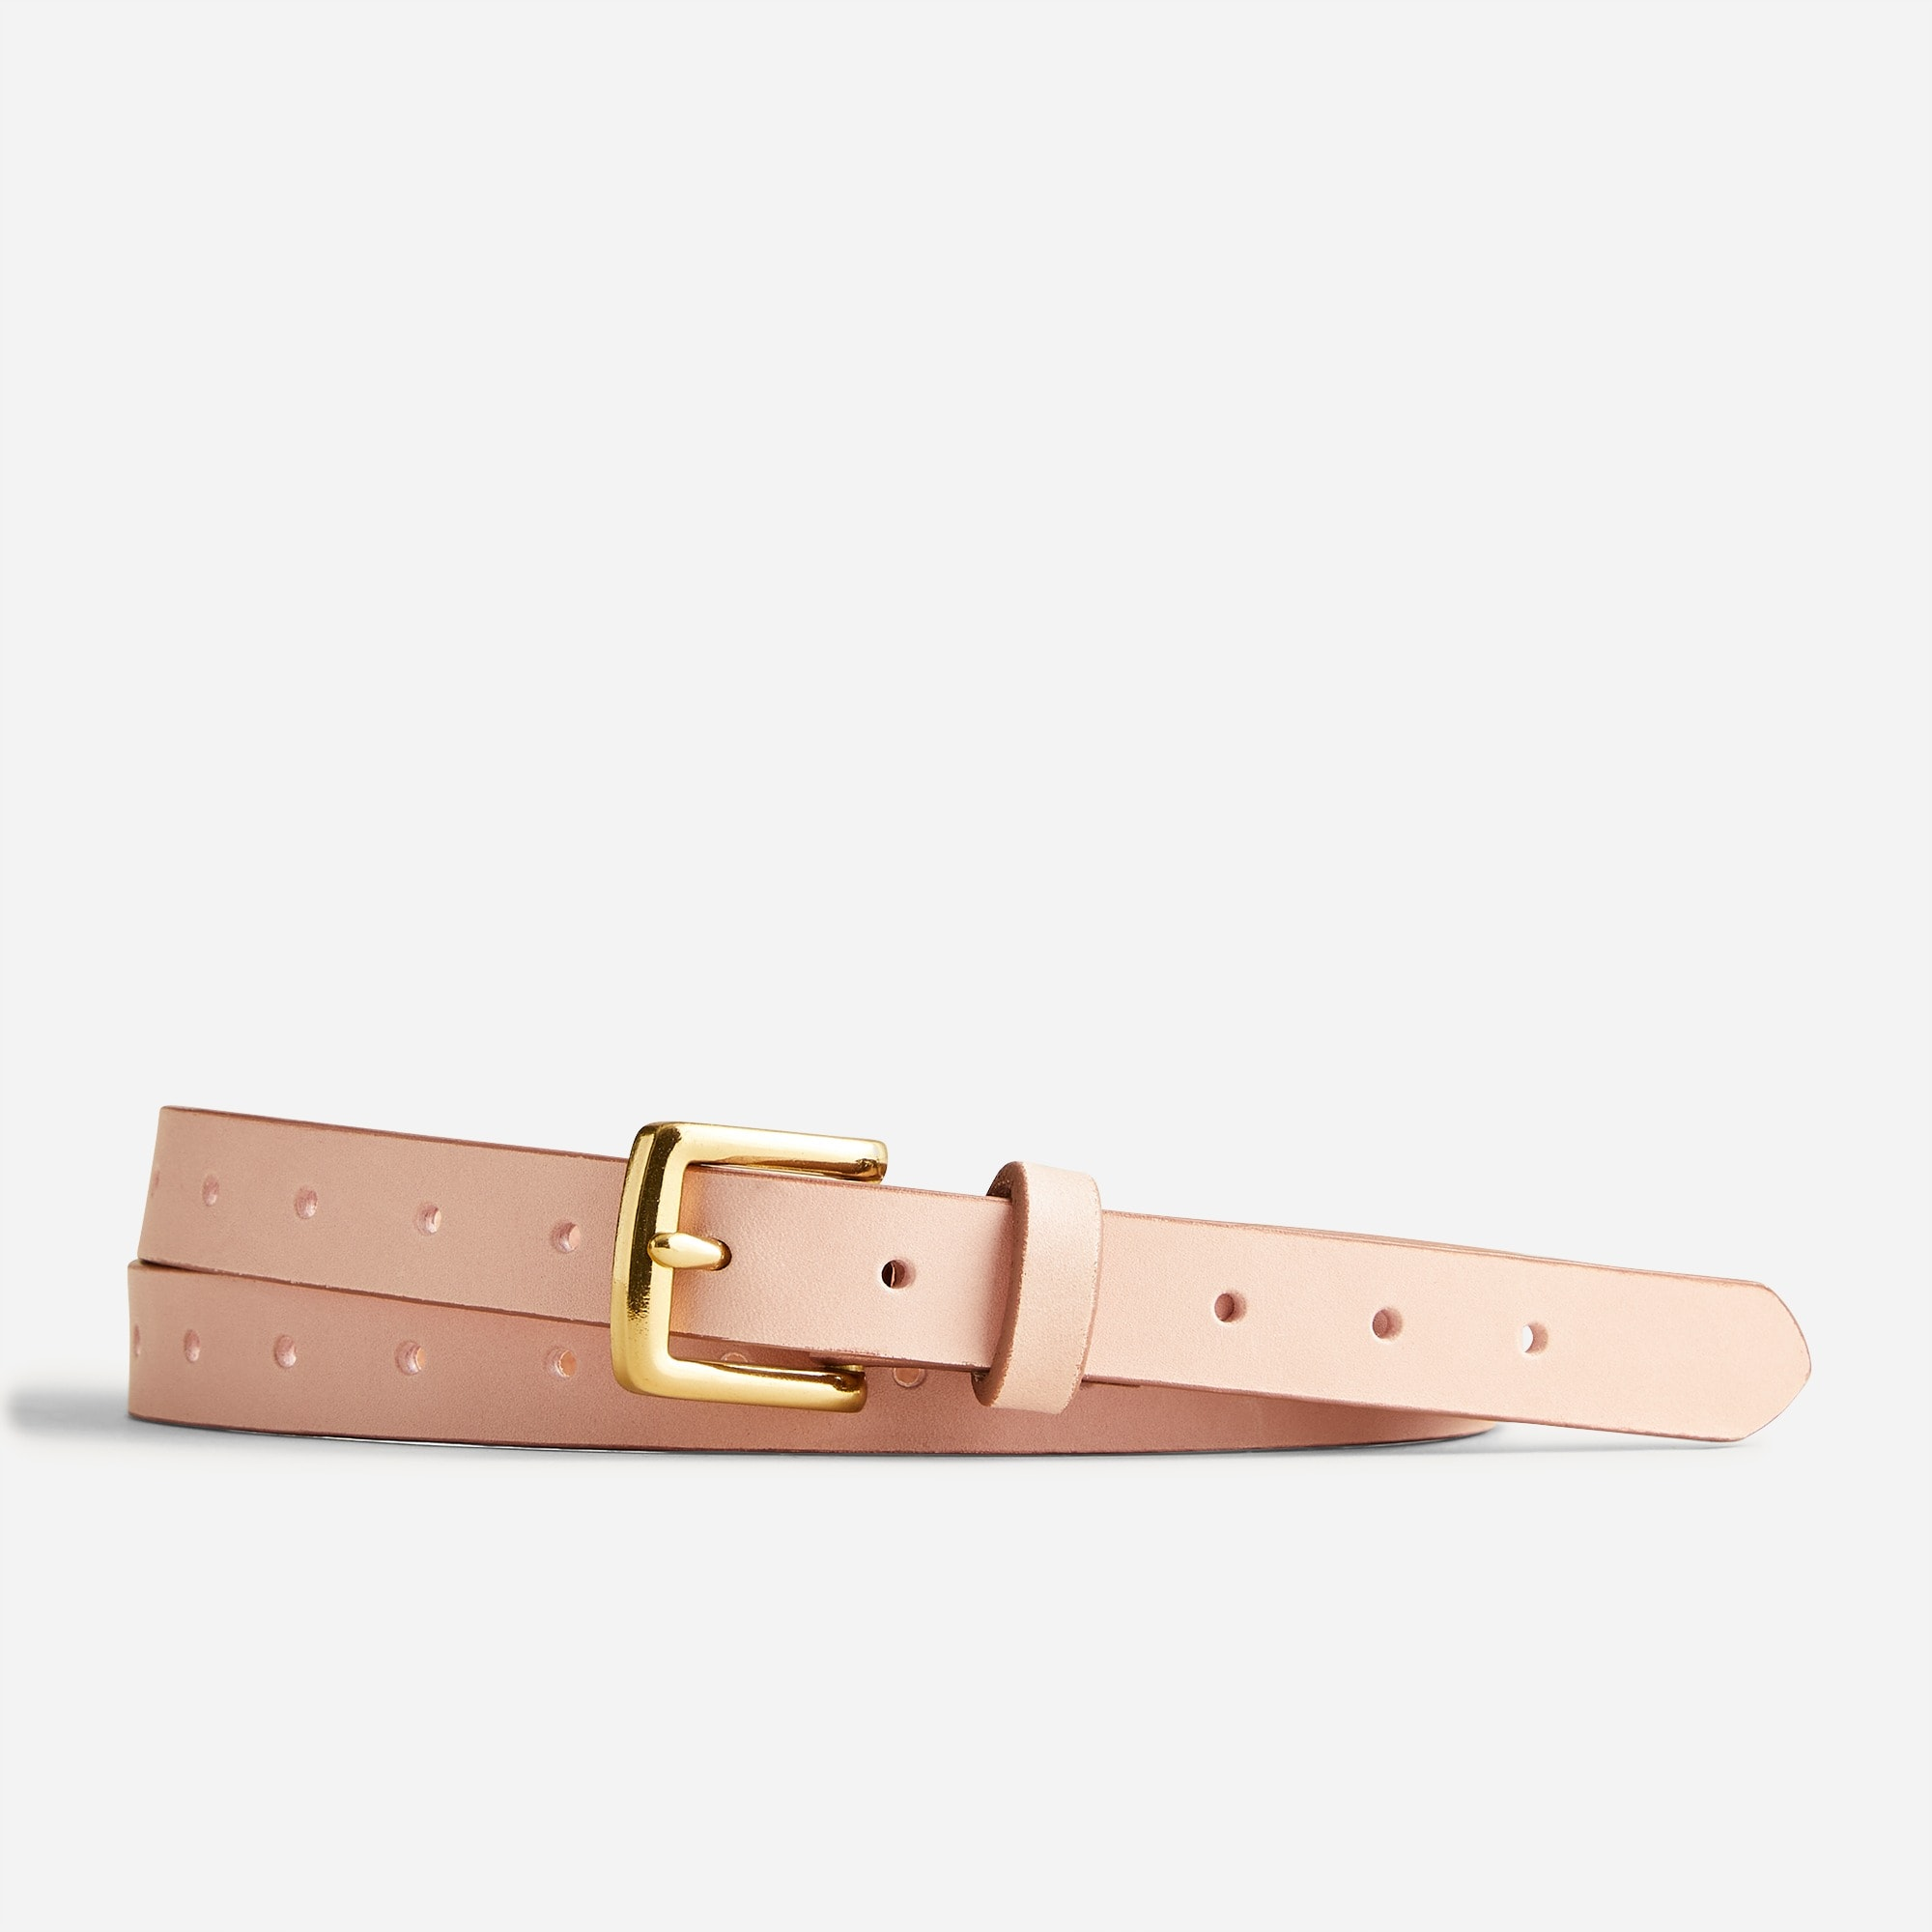 Image 1 for Perforated Italian leather belt